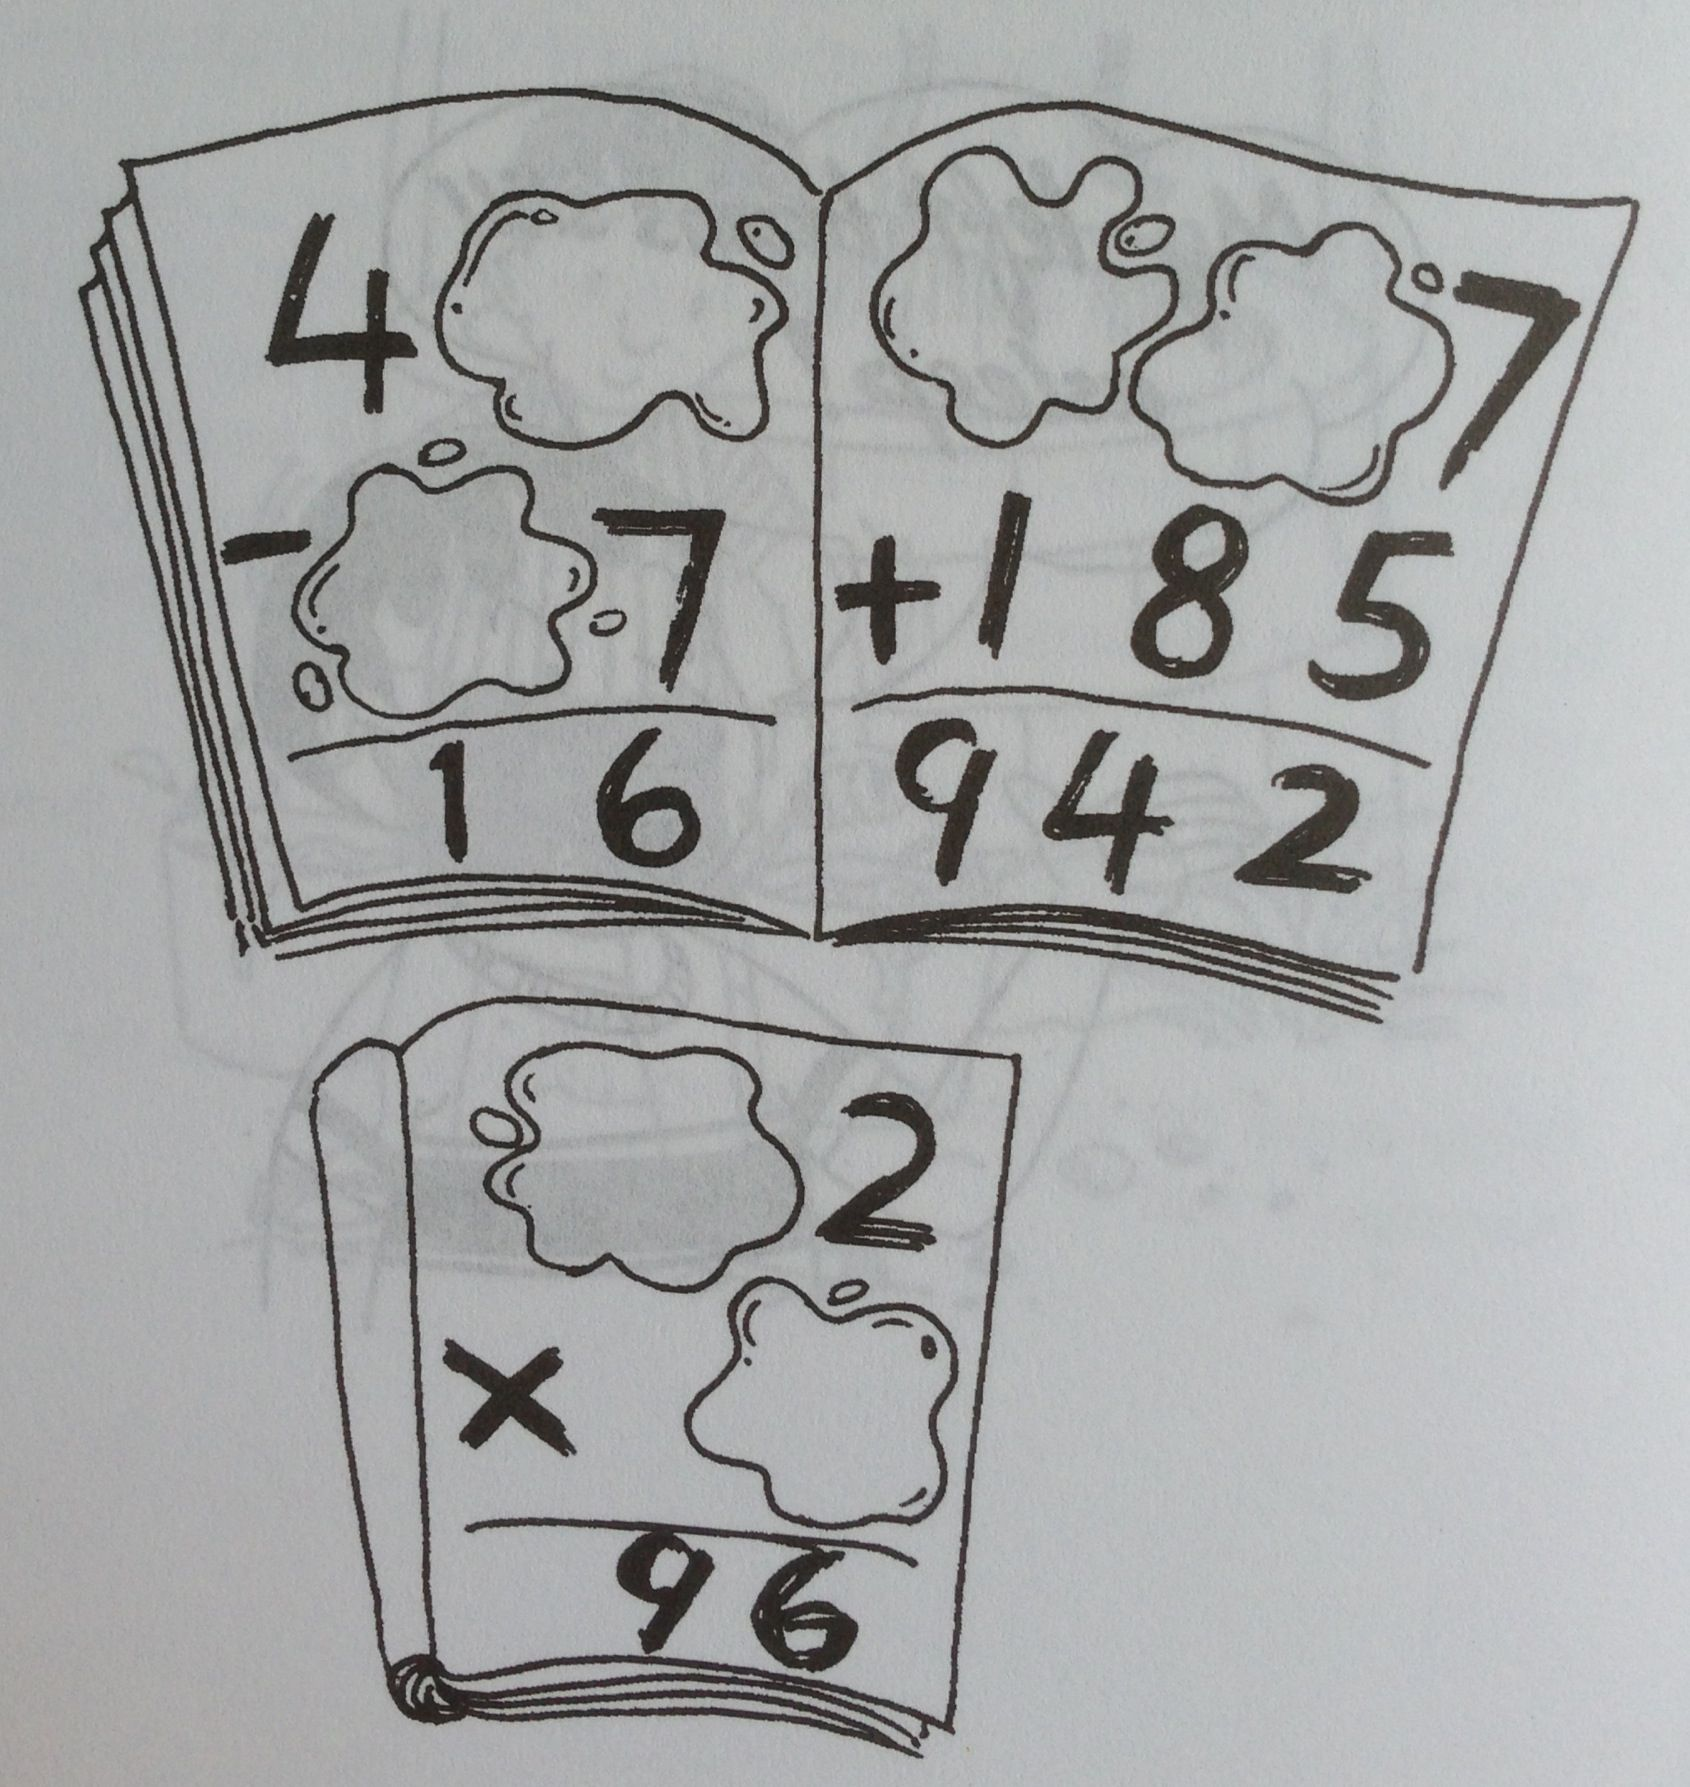 A Grade 3 Singapore Math Question Figure Out The Defaced